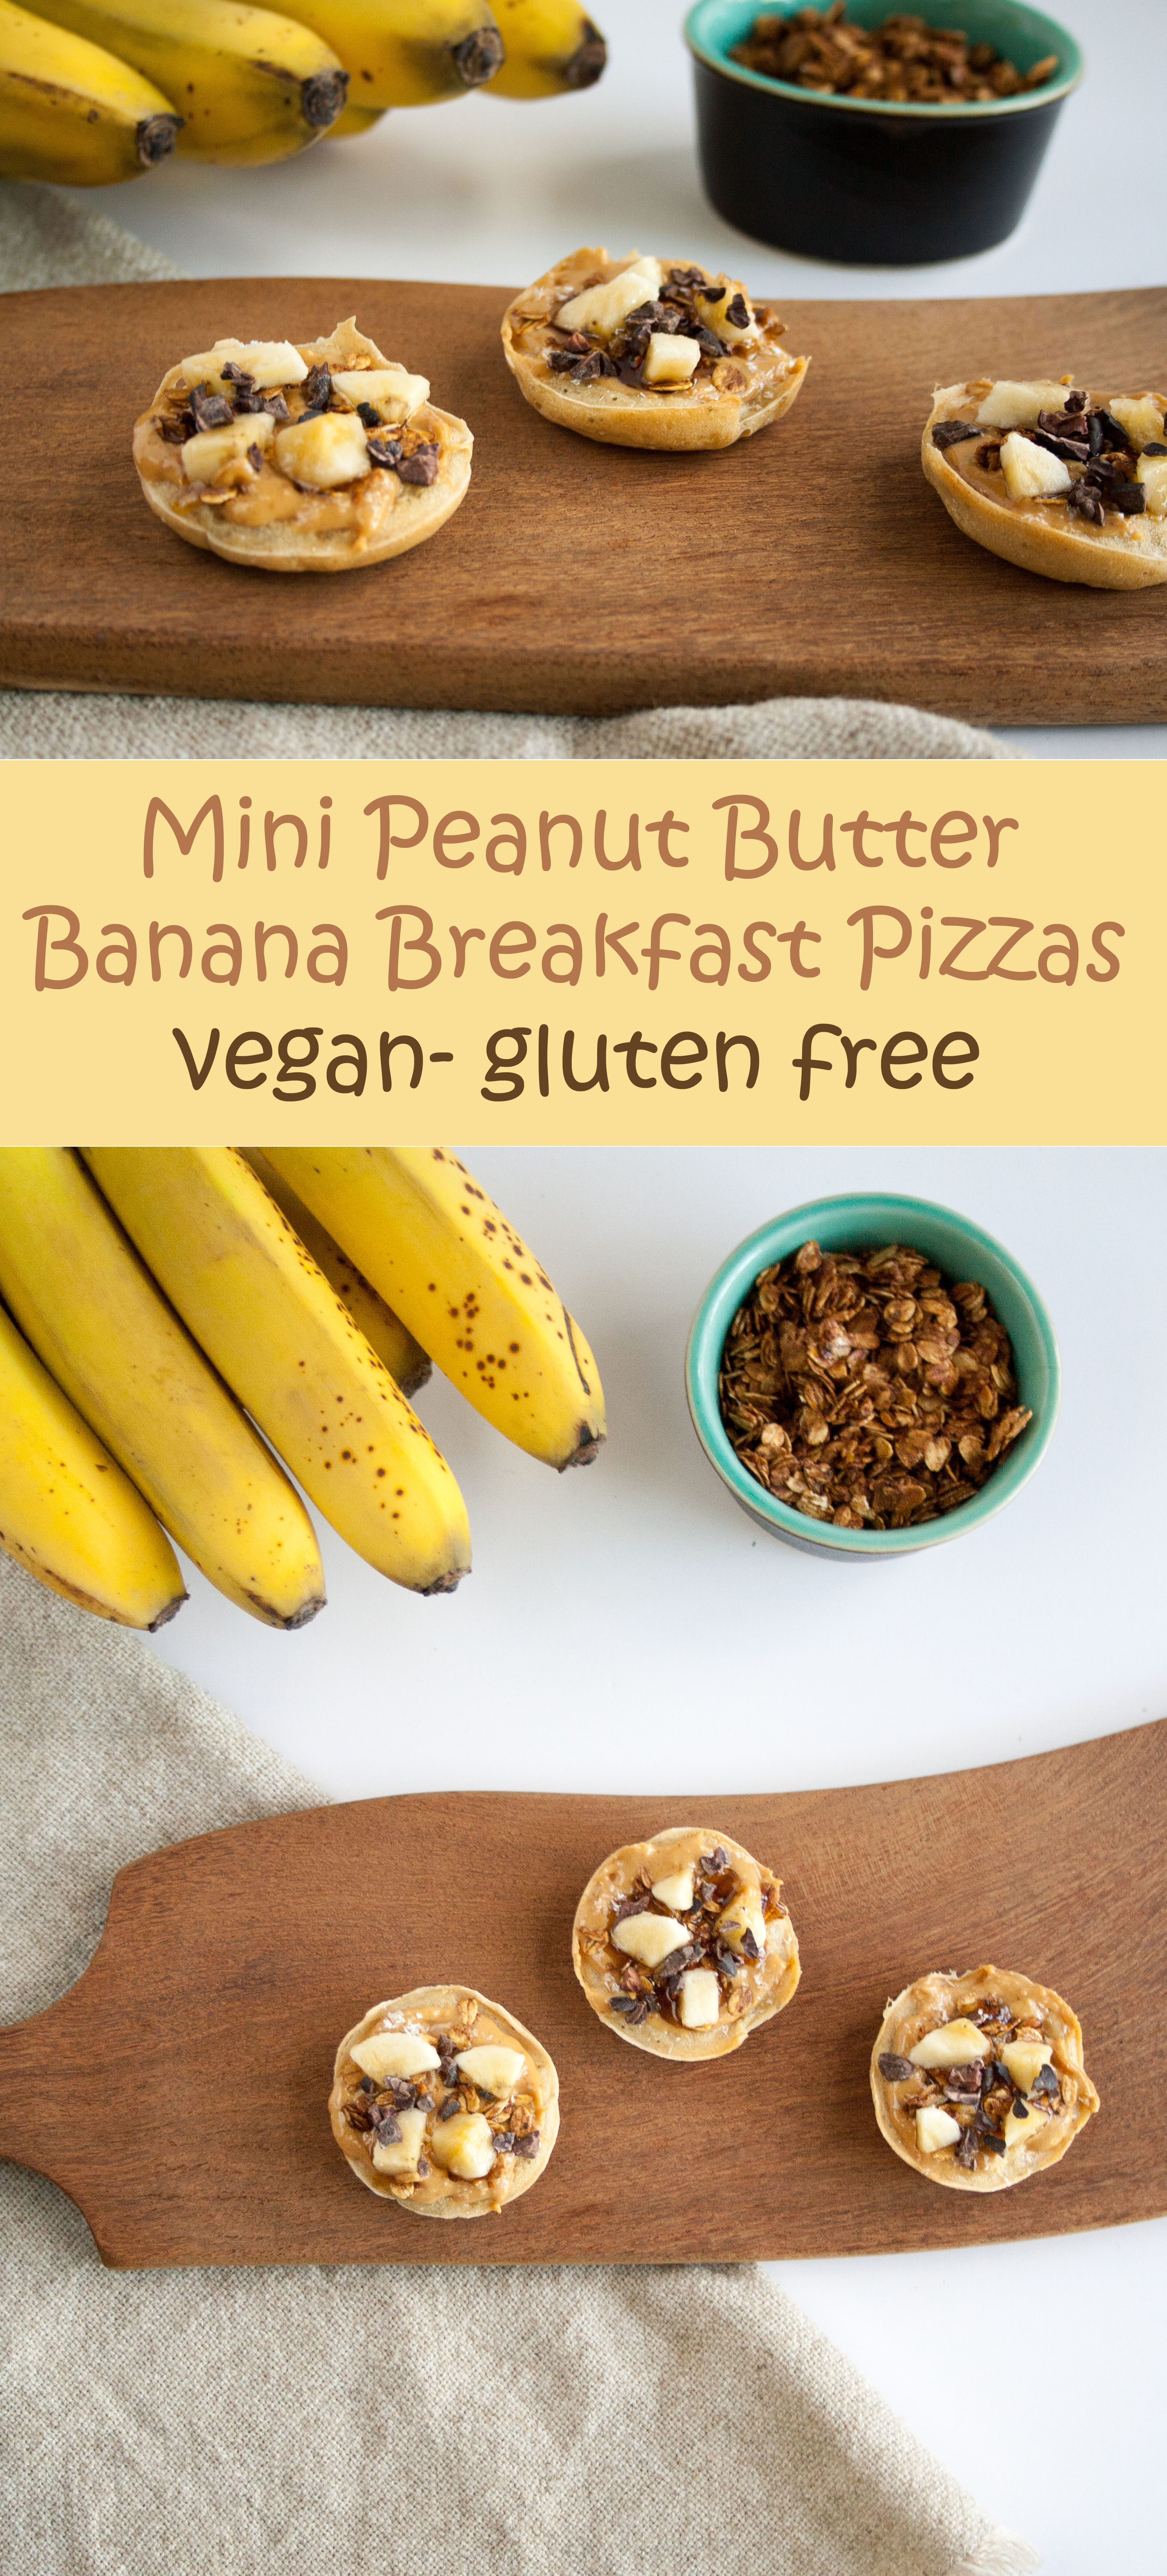 Mini Peanut Butter Banana Breakfast Pizzas collage photo with text.